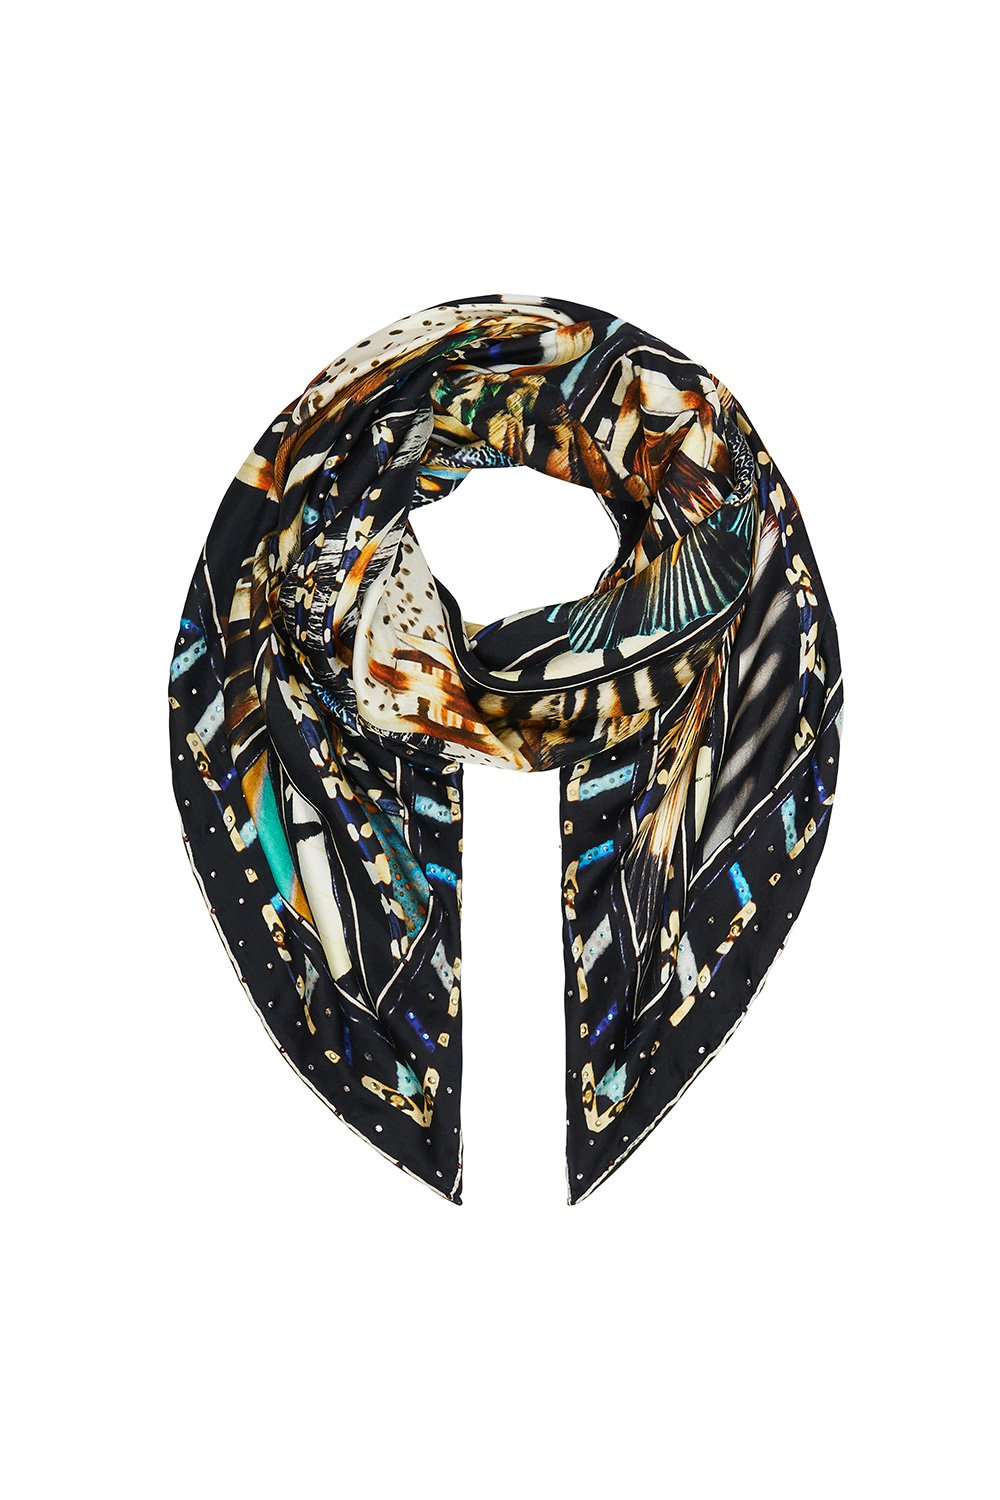 LARGE SQUARE SCARF LOST PARADISE